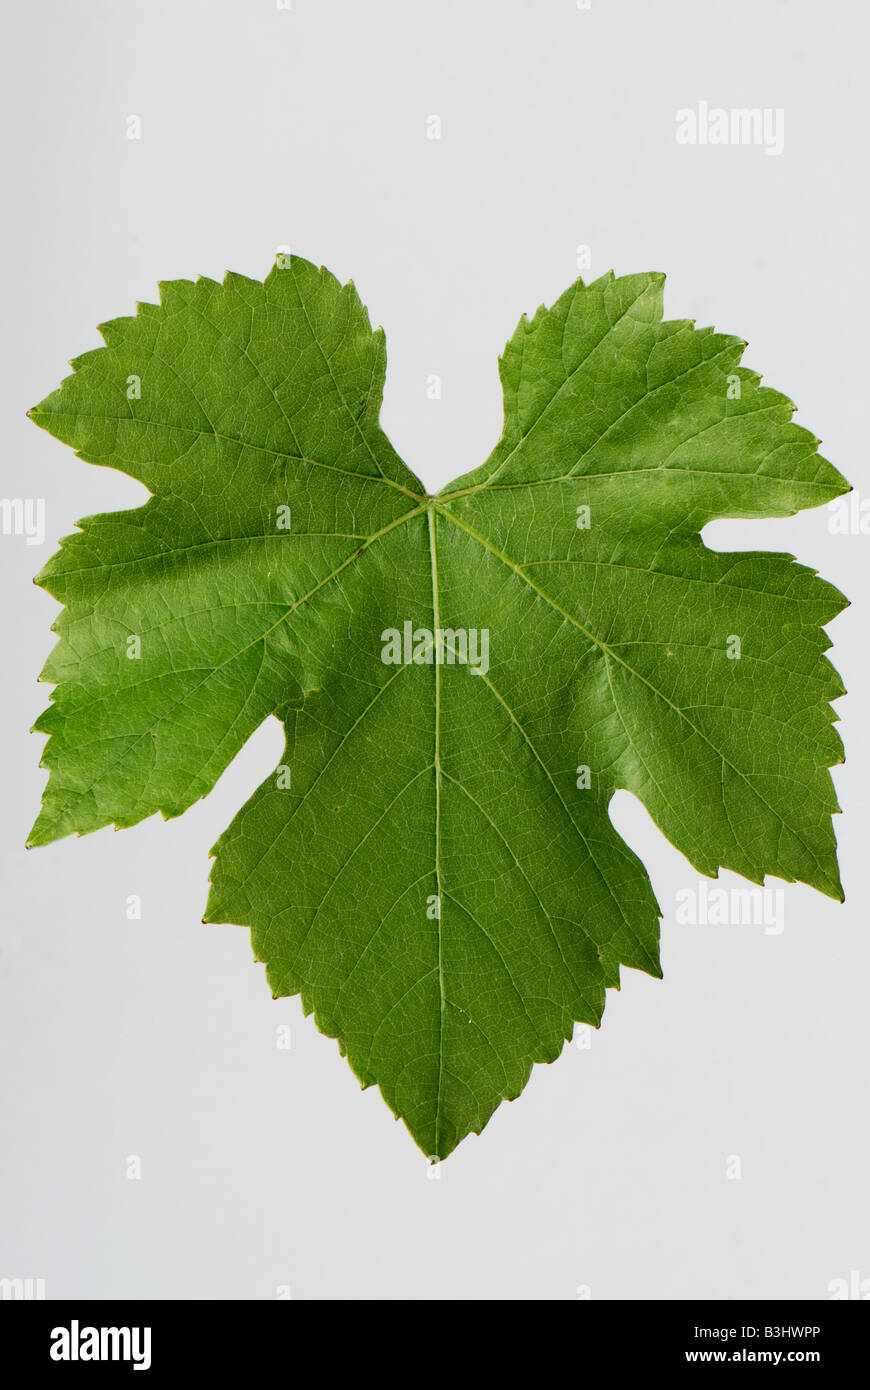 A single vine leaf against a white background - Stock Image